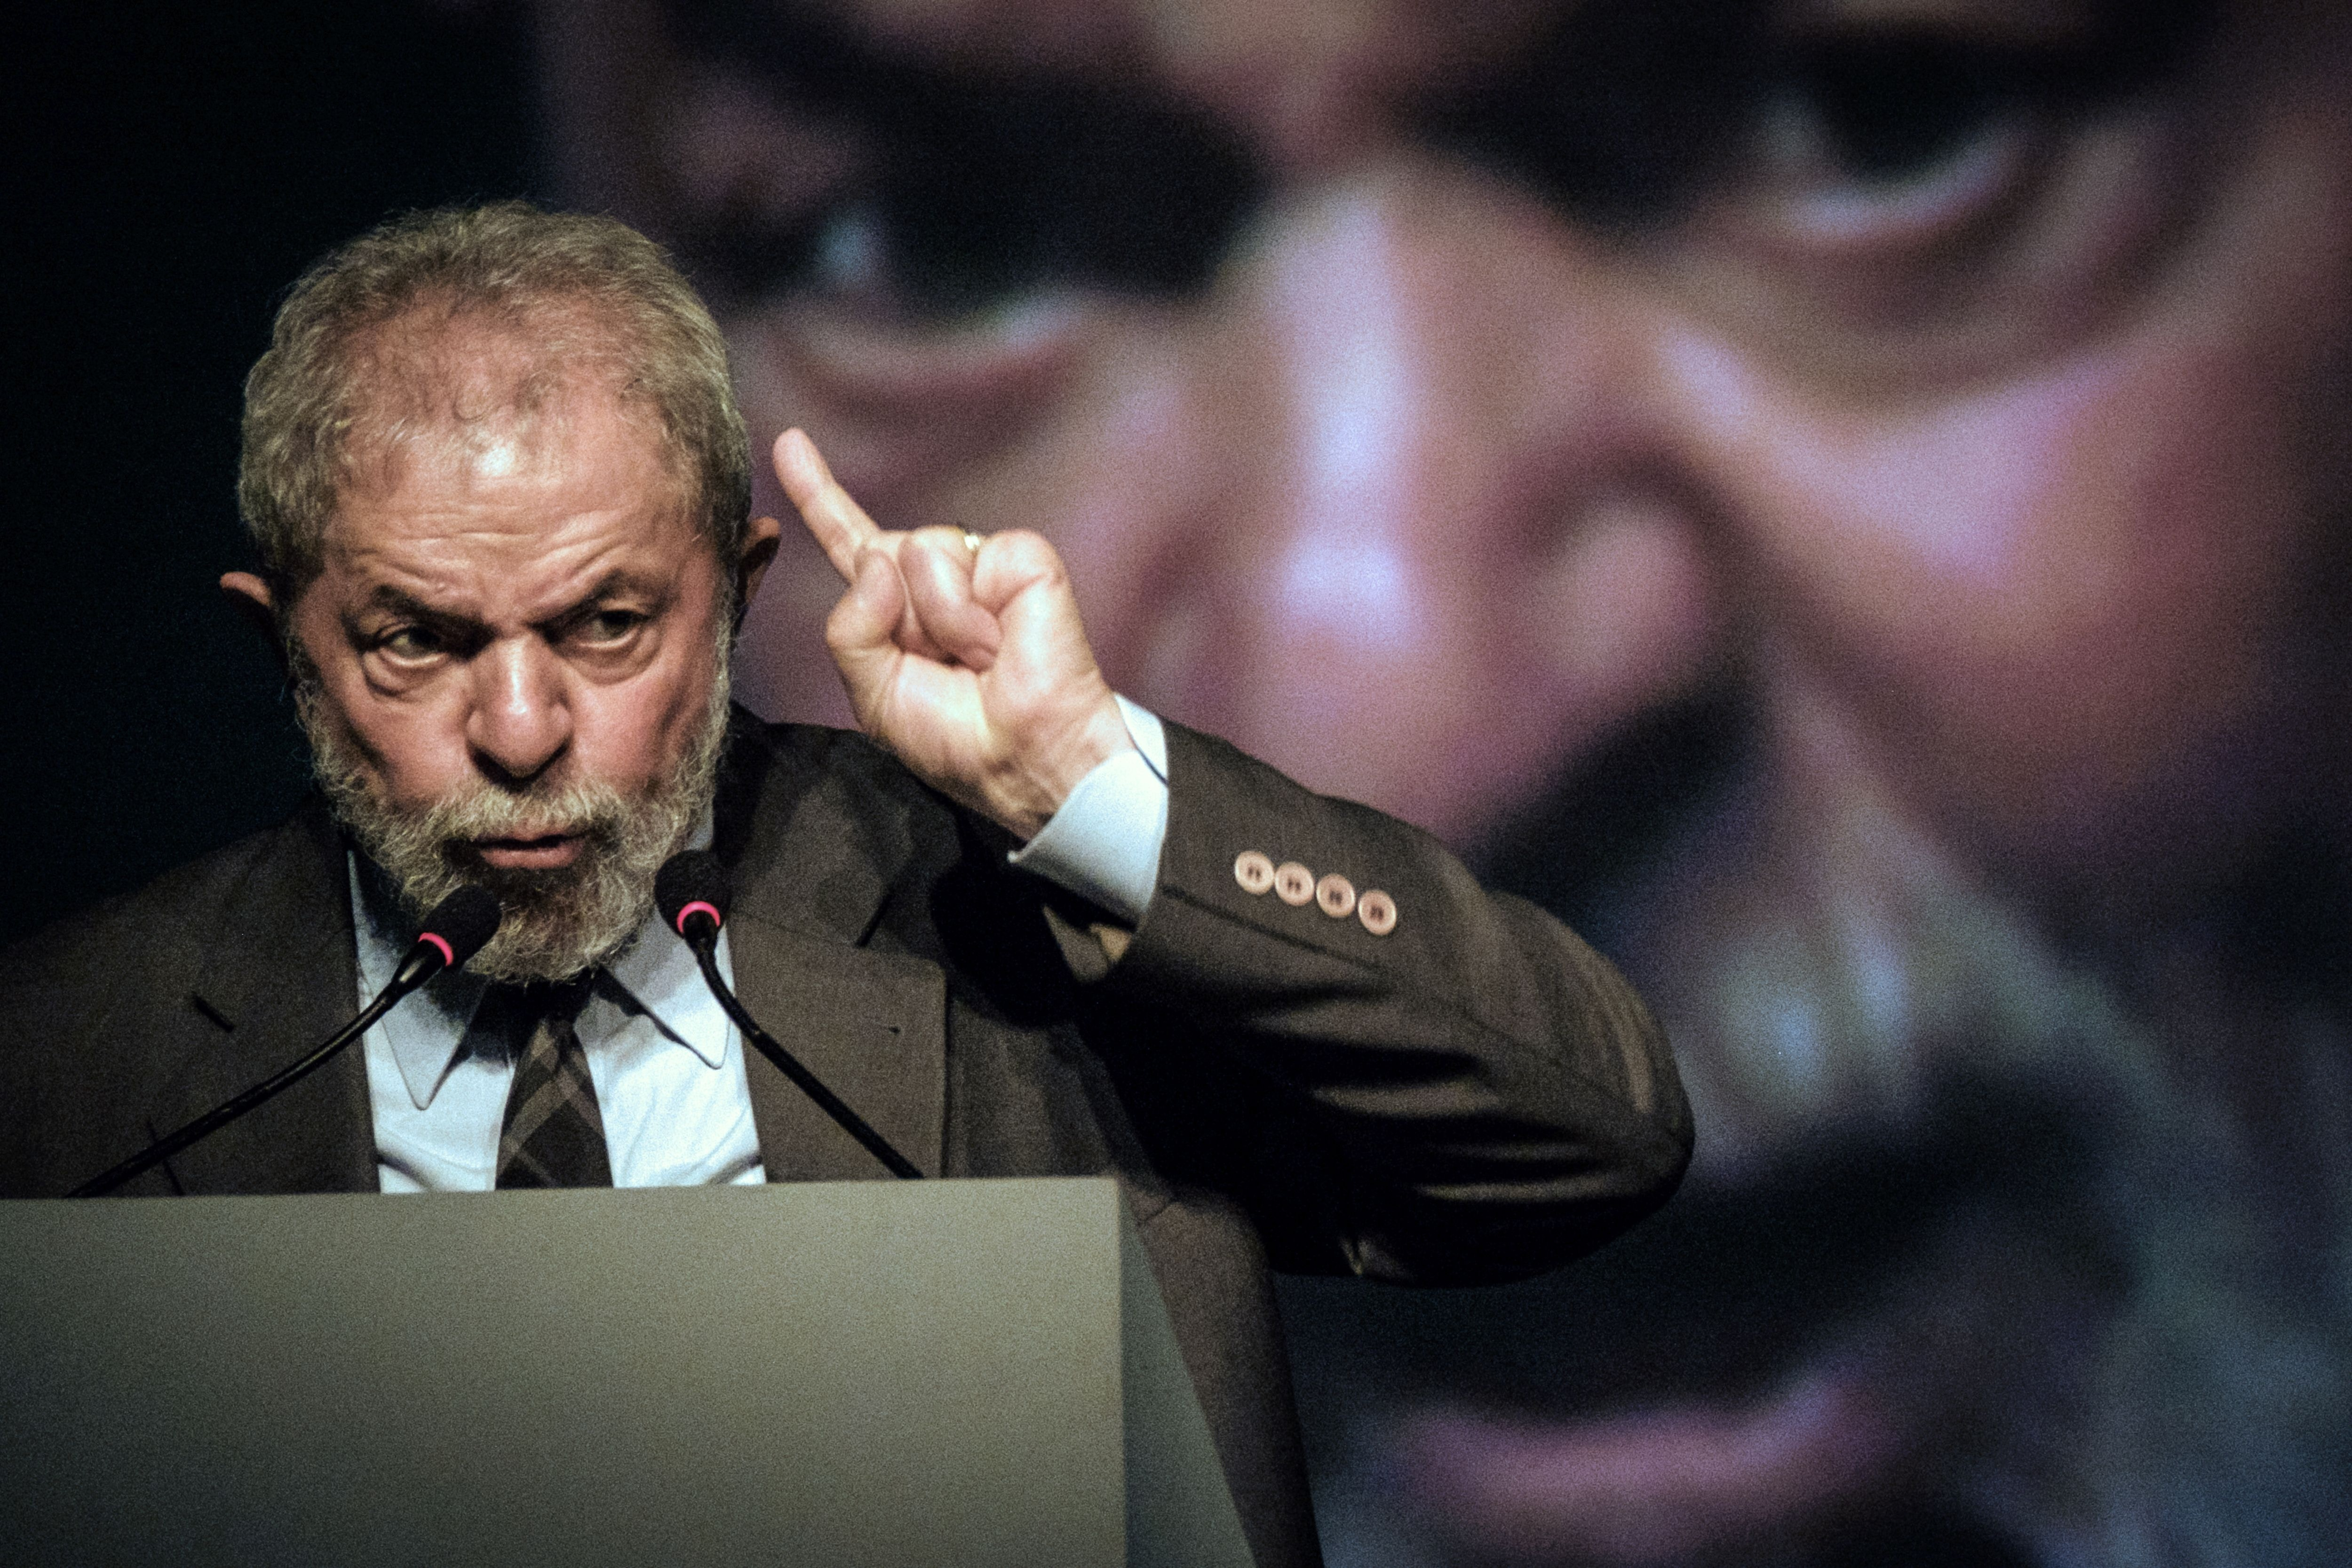 TOPSHOT - Brazil's former president (2003-2011) Luiz Inacio Lula da Silva speaks during the second congress of the IndustriALL Global Union in Rio de Janeiro, Brazil on October 4, 2016.IndustriALL Global Union represents workers in the mining, energy and manufacturing sectors in 140 countries around the world. / AFP / YASUYOSHI CHIBA (Photo credit should read YASUYOSHI CHIBA/AFP via Getty Images)